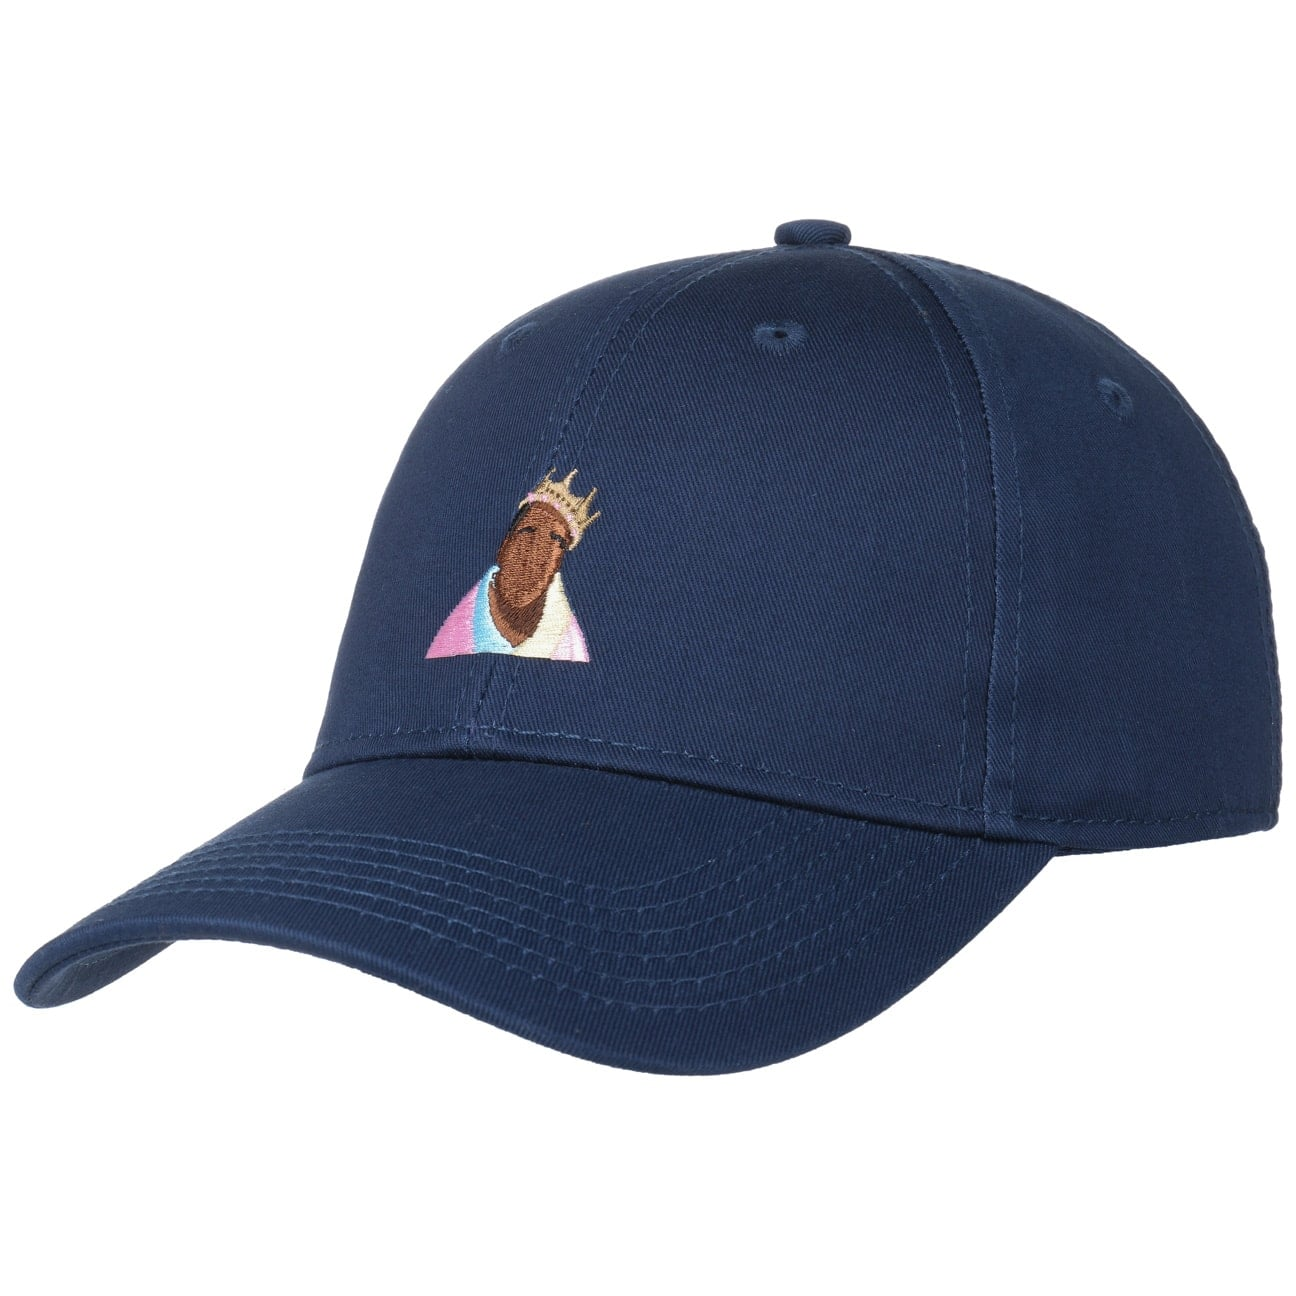 Gorra Dream Curved Strapback by Cayler & Sons  gorra de baseball